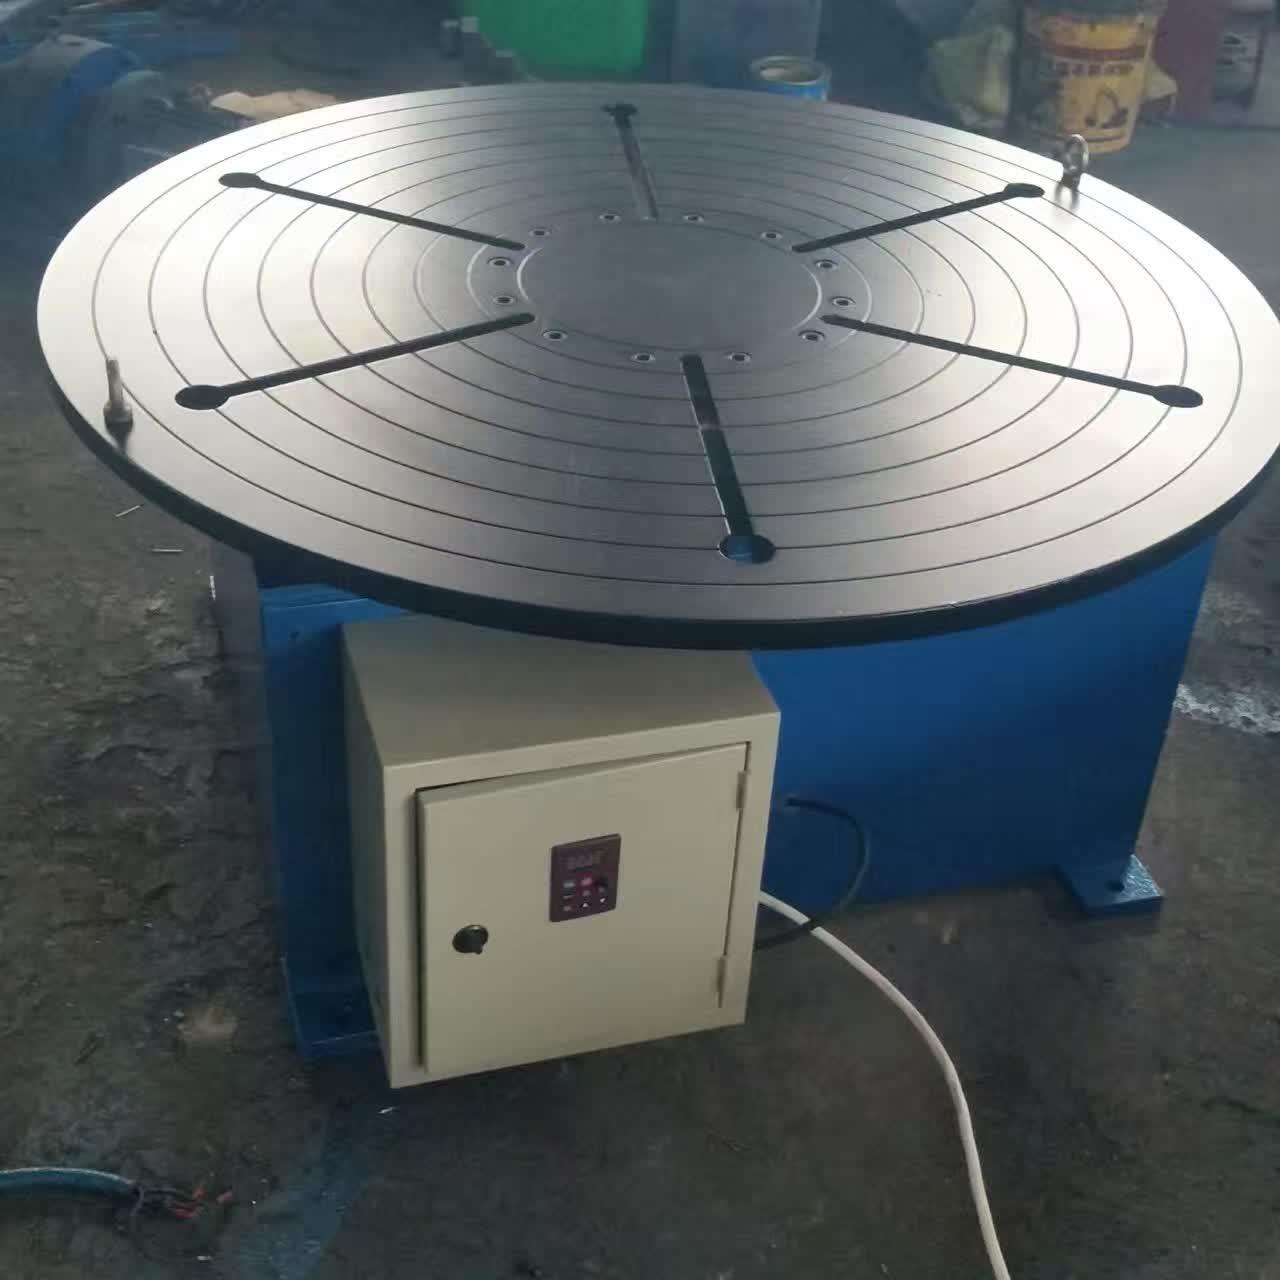 Best Pipe Revolving Table For Welding For Round Seam Welding Rotary Table With Round Table Supporting 15 Tons wholesale